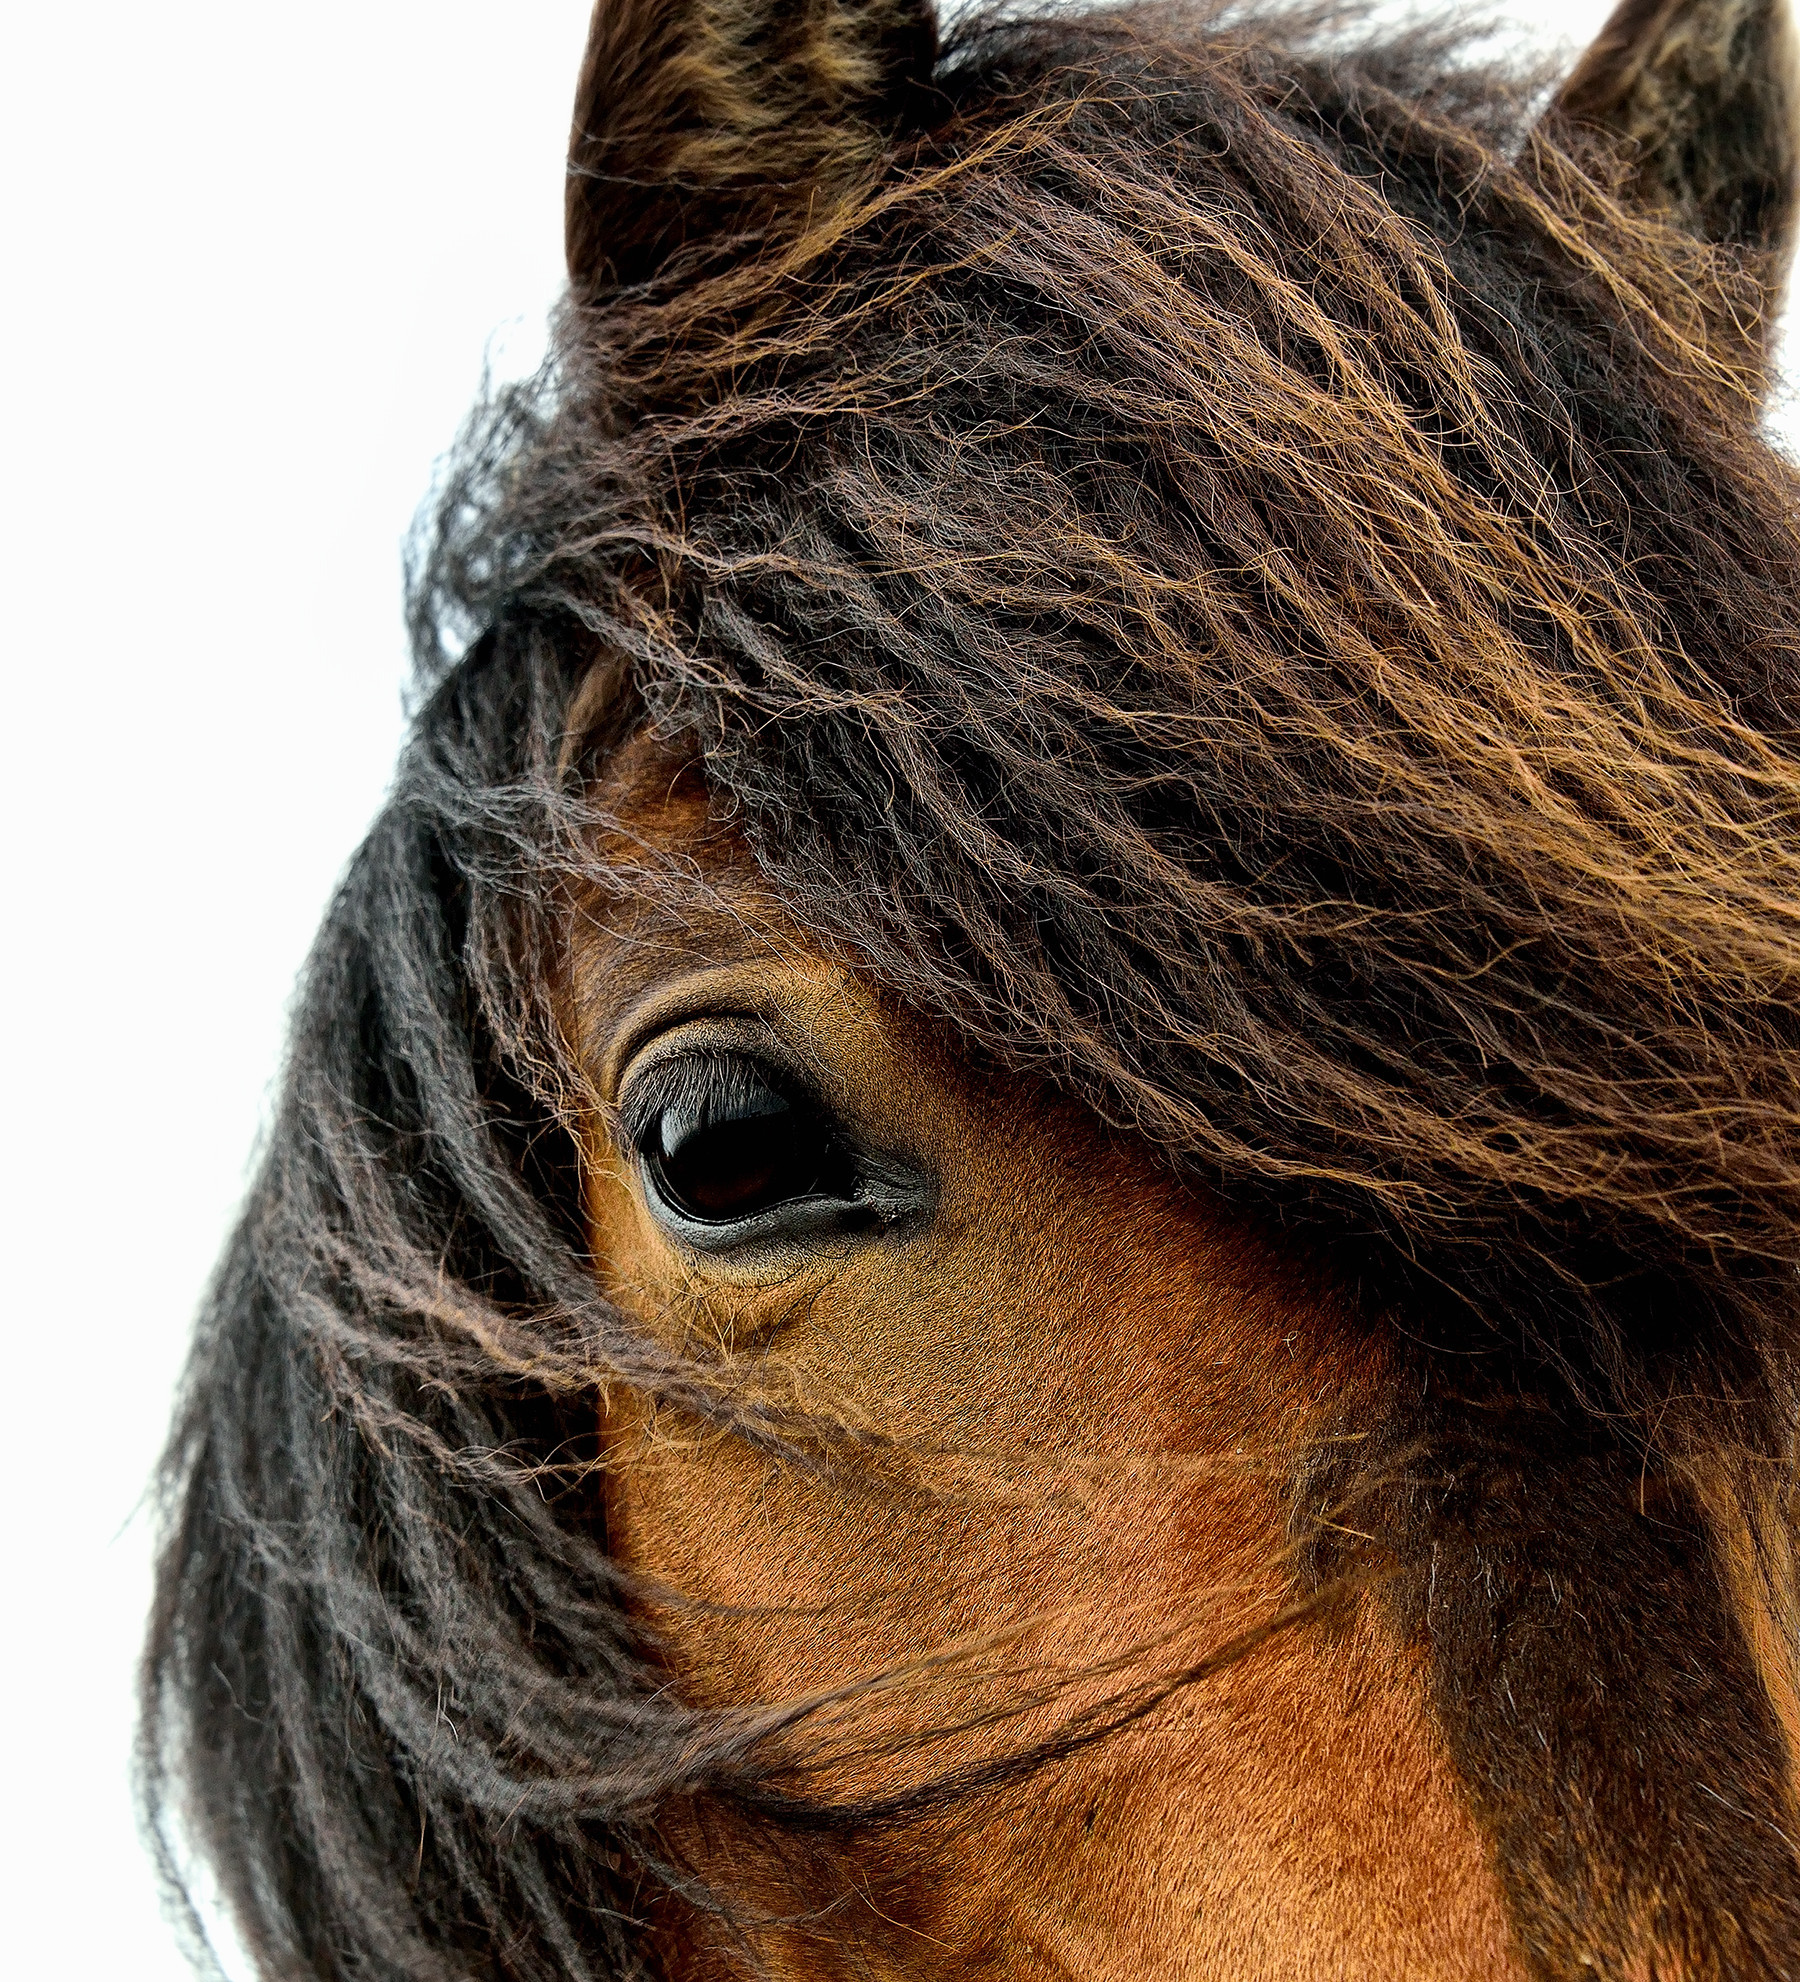 Close-up of a horse in Iceland